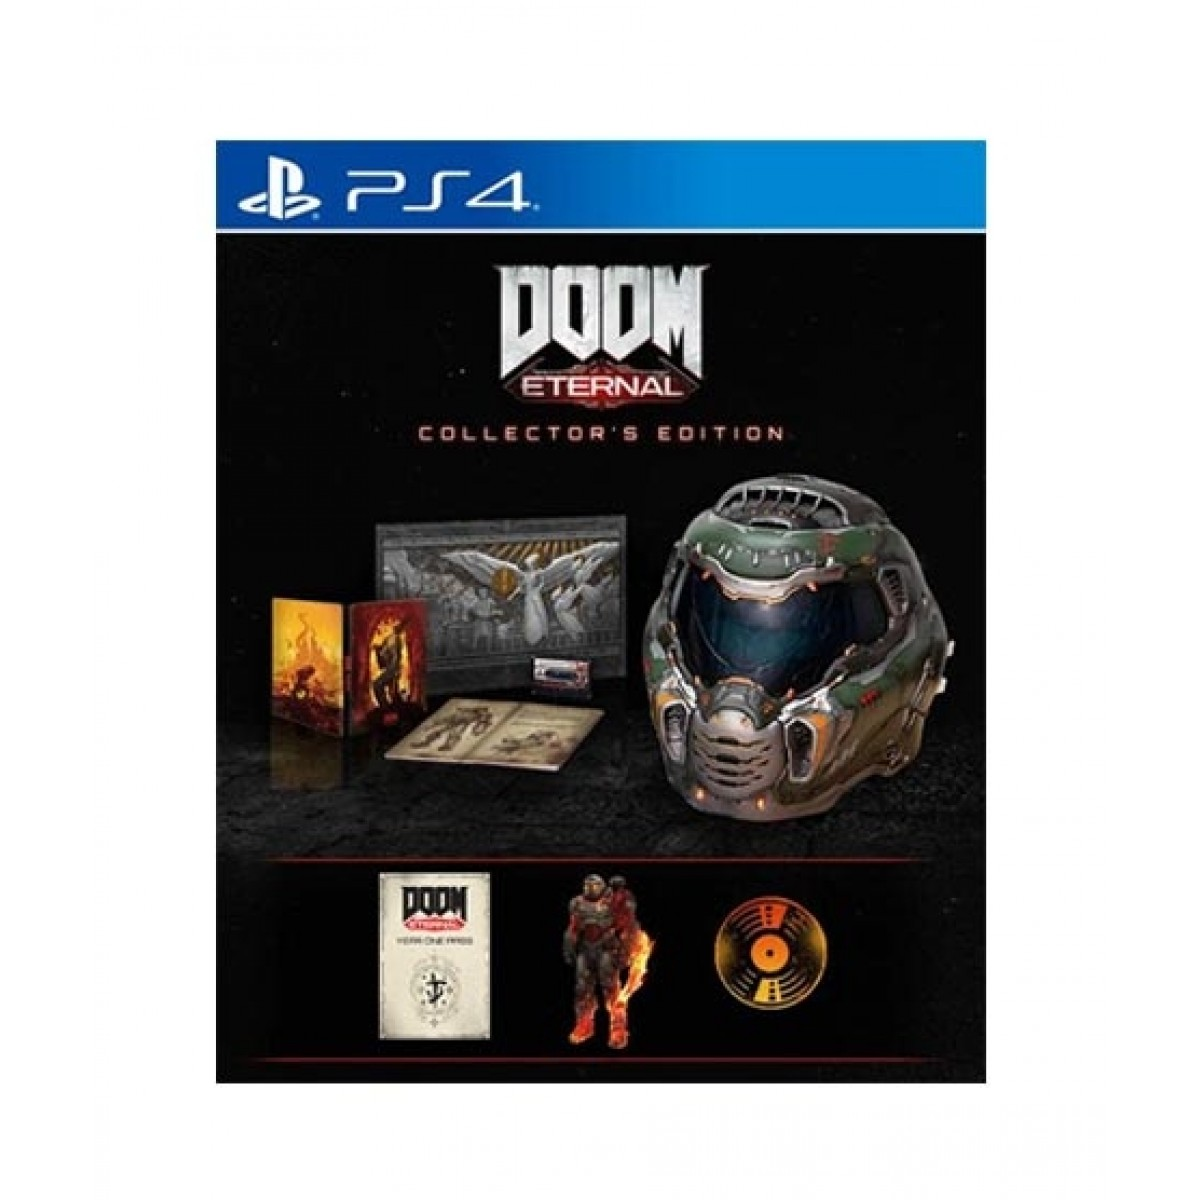 Doom Eternal Collector's Edition Game For PS4